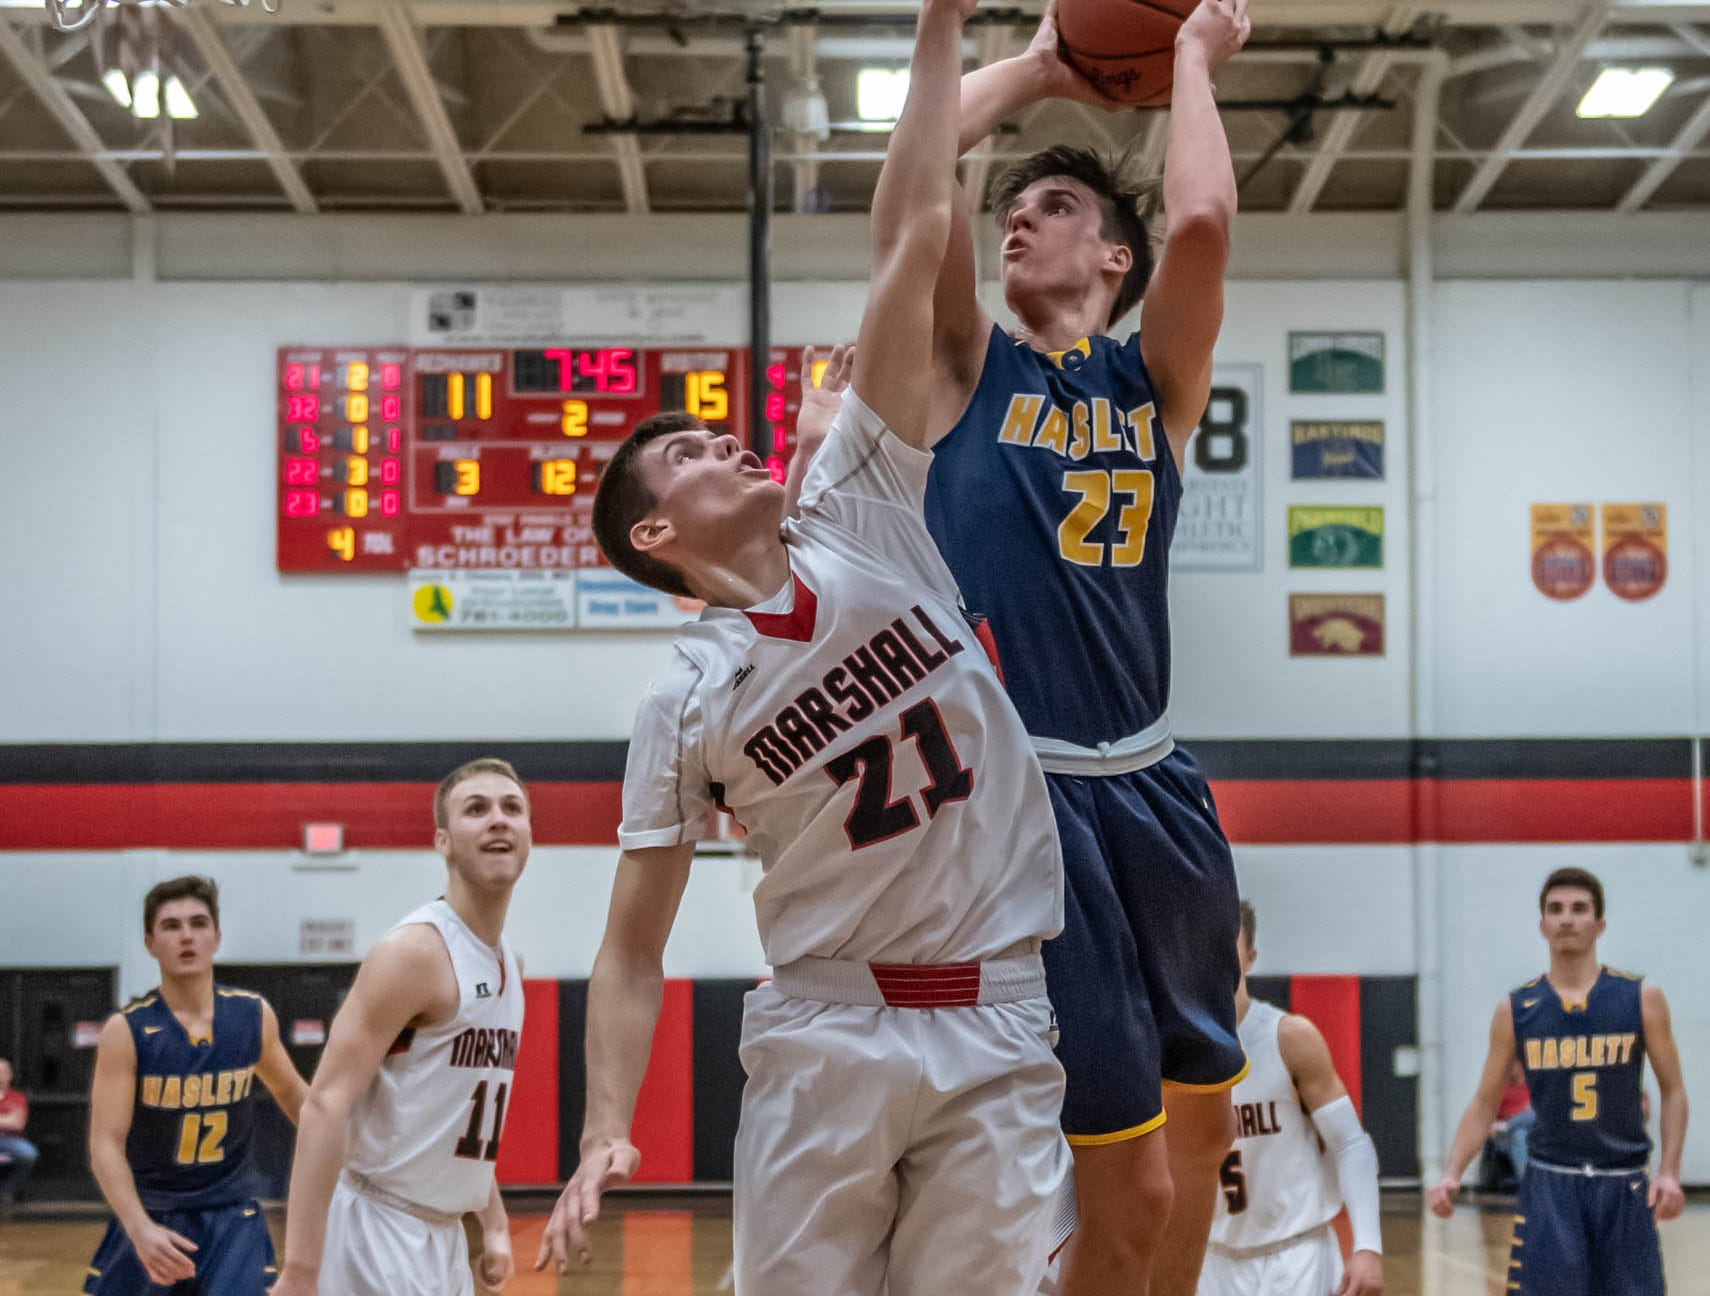 Haslett's Sam Laczynski (23) goes for the hoop while being guarded by Marshall's Dan Delmotte (21) during first half action of regional playoffs Tuesday evening.